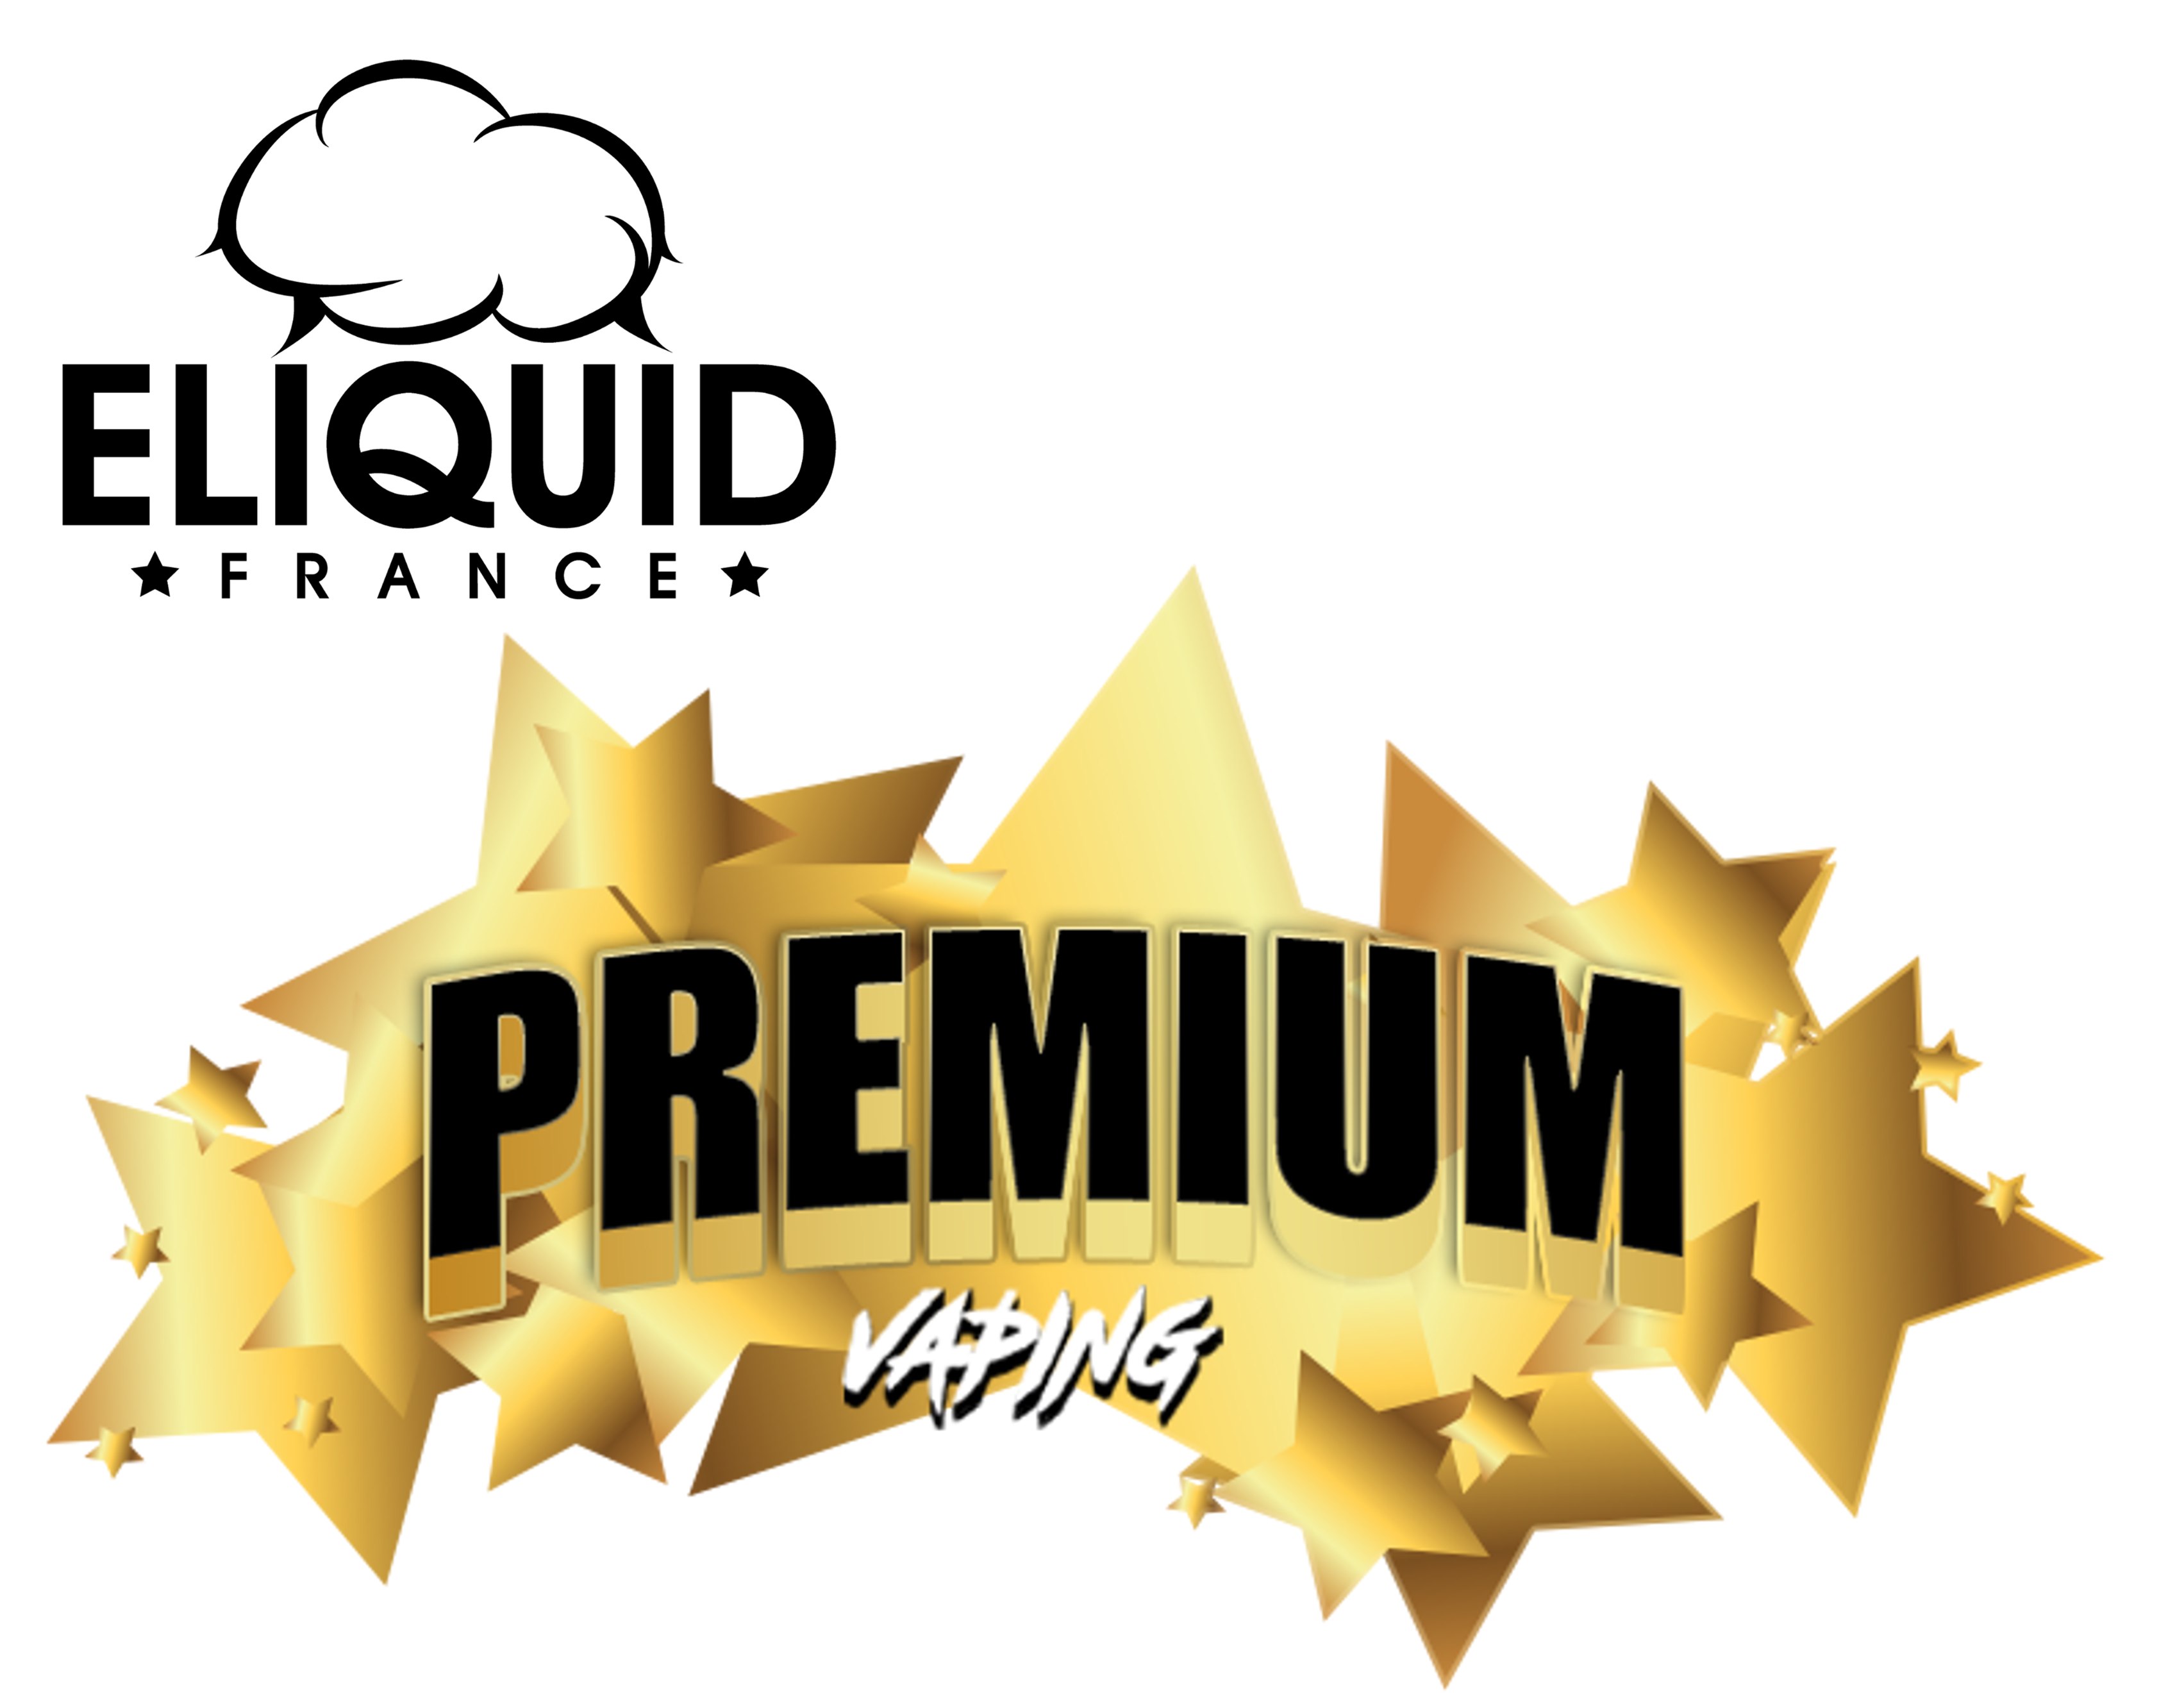 Eliquid France - Premium Vaping